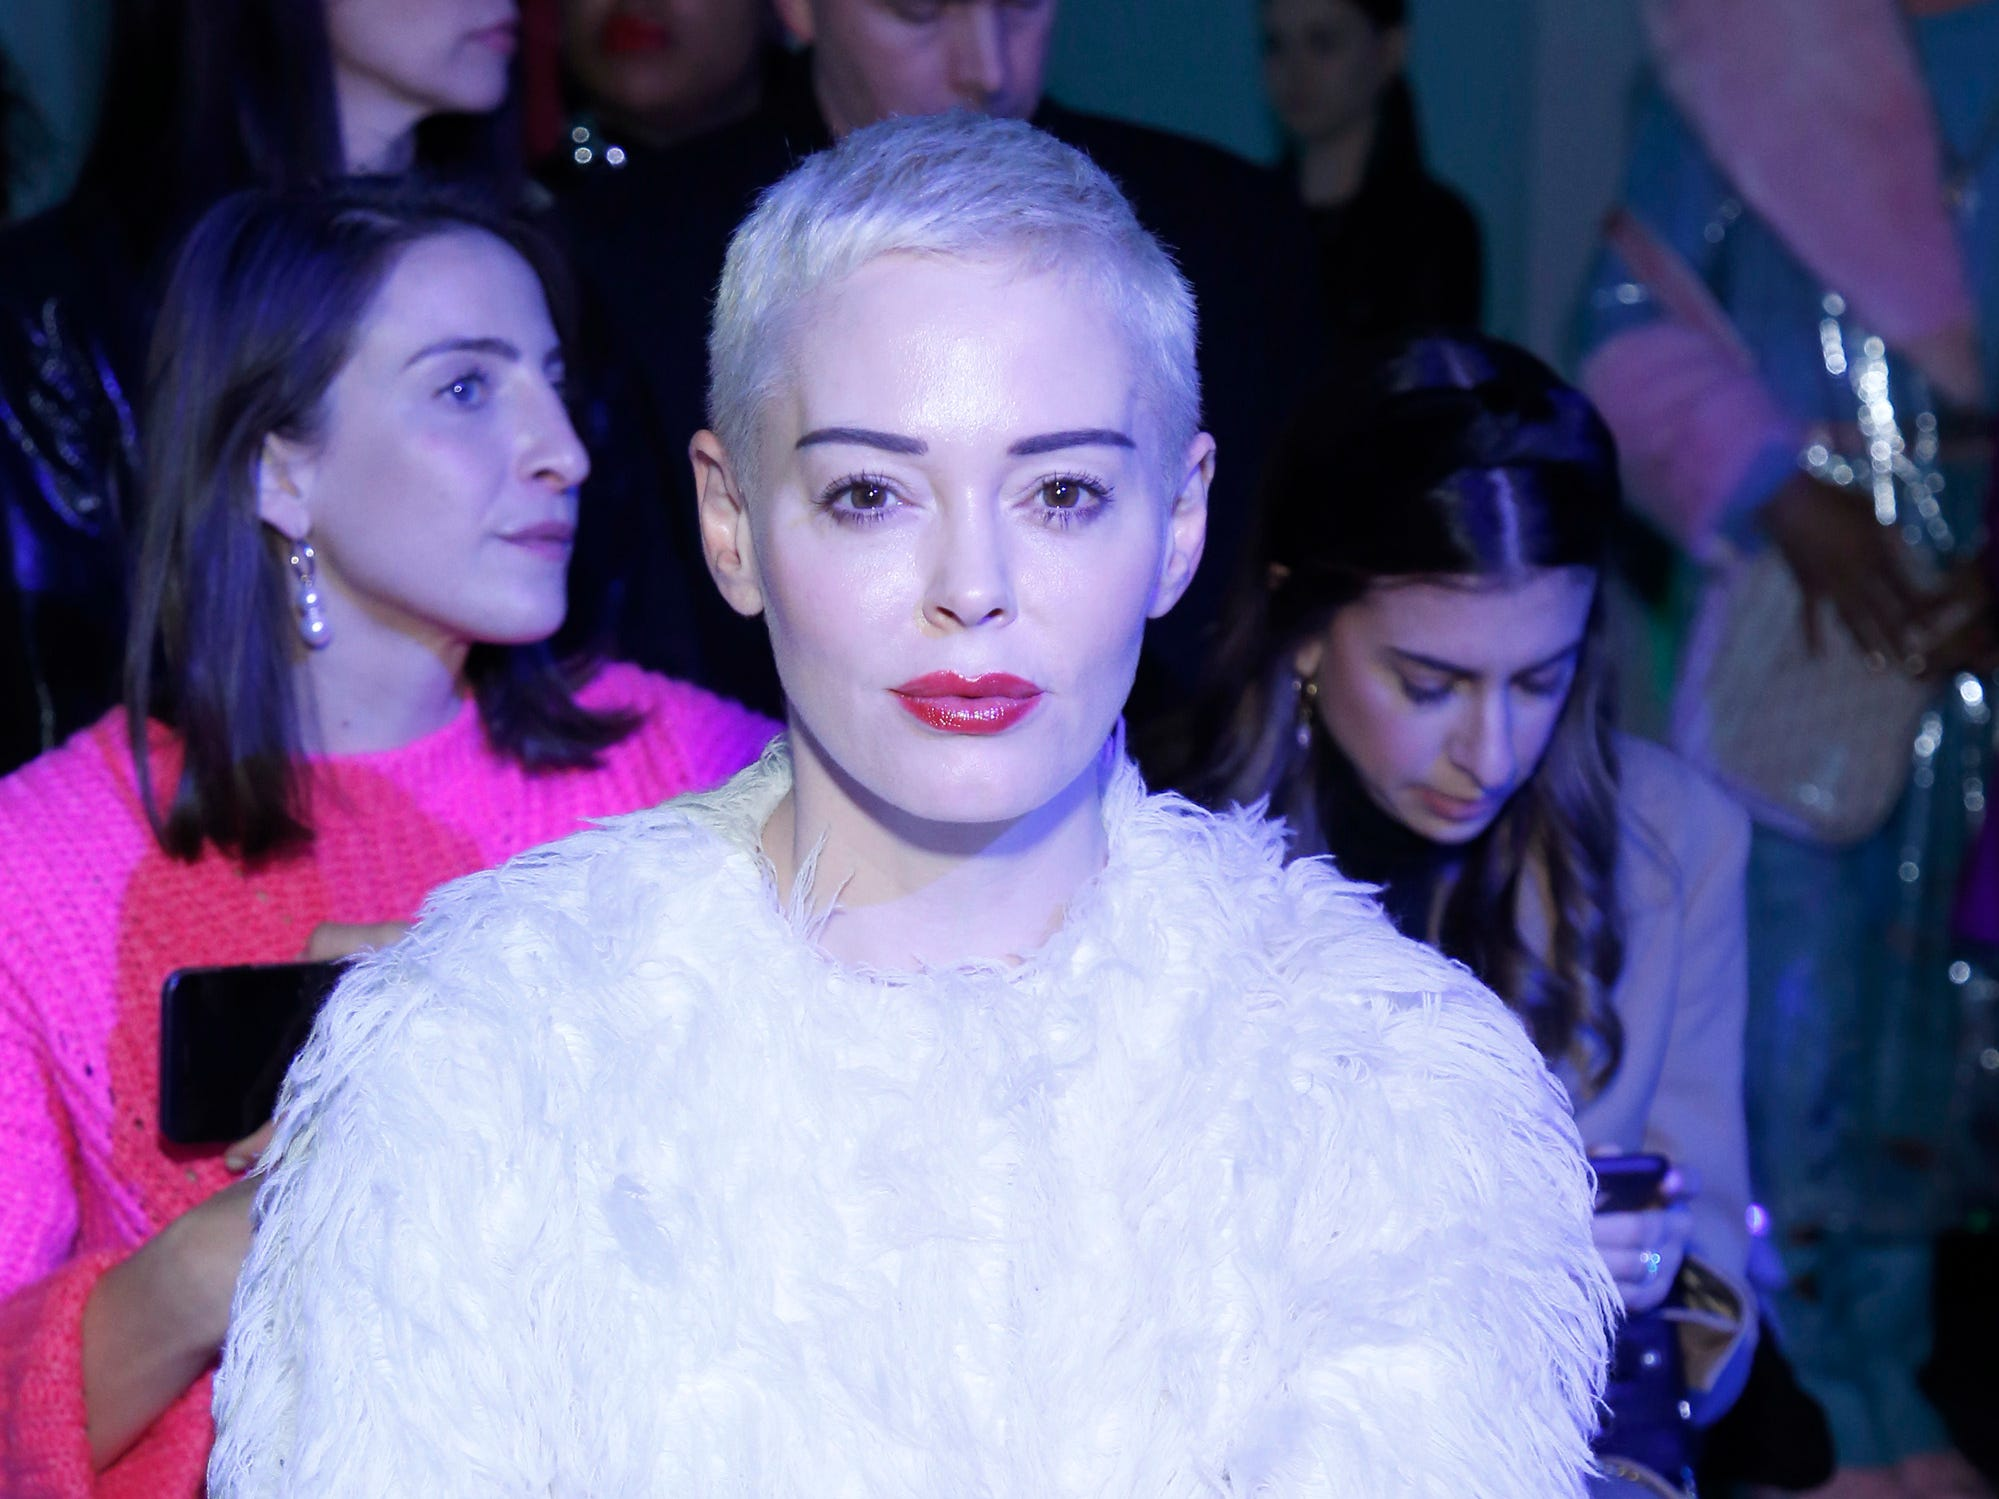 NEW YORK, NY - FEBRUARY 08:  Actress Rose McGowan attends the Chromat front row during New York Fashion Week: The Shows at Industria Studios on February 8, 2019 in New York City.  (Photo by John Lamparski/Getty Images for NYFW: The Shows) ORG XMIT: 775289383 ORIG FILE ID: 1095922524